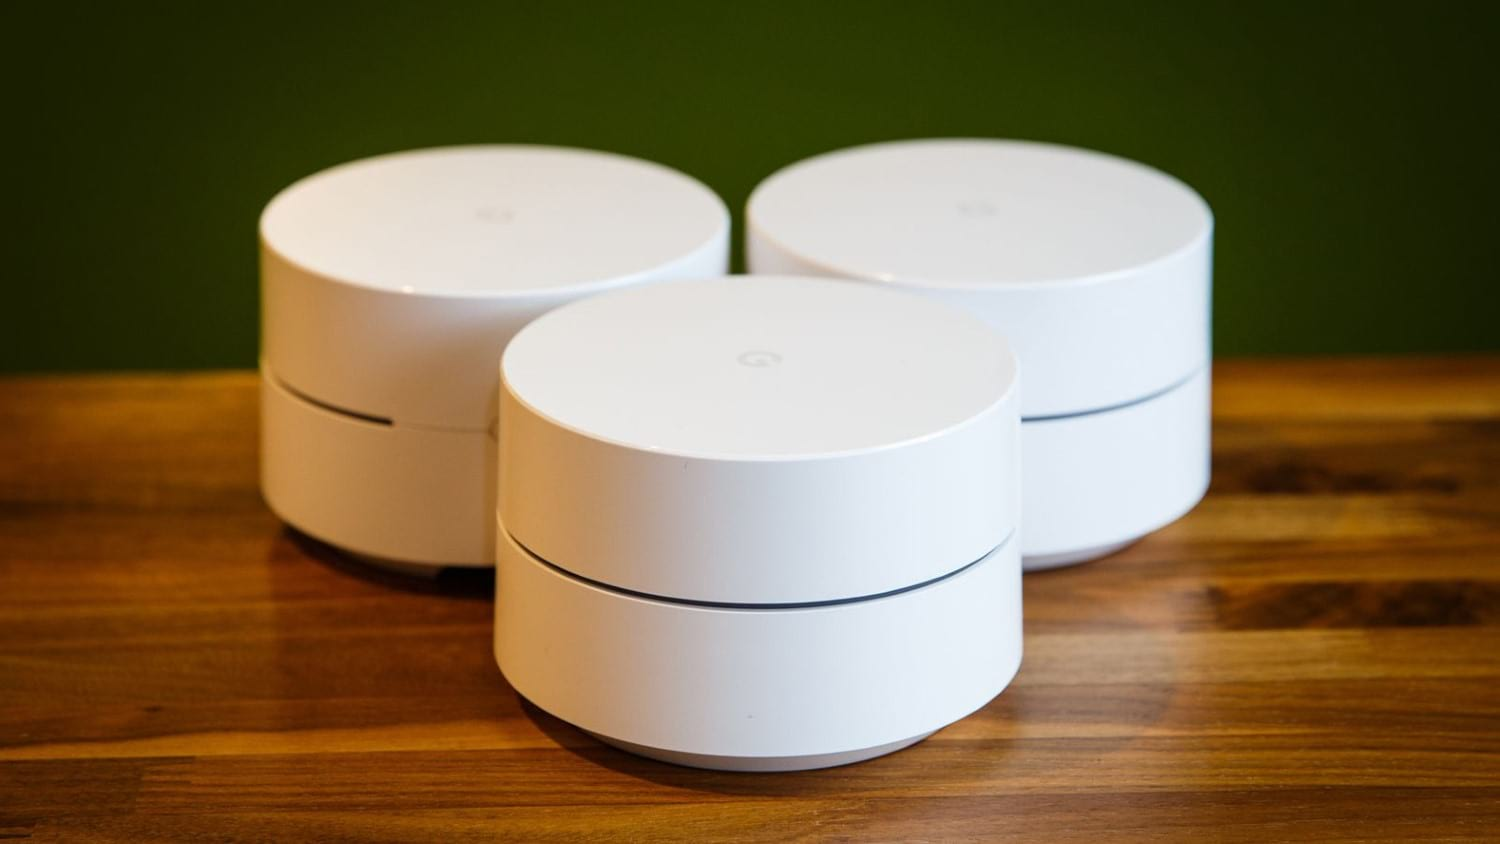 Google WiFi setup is easier with NetSpot